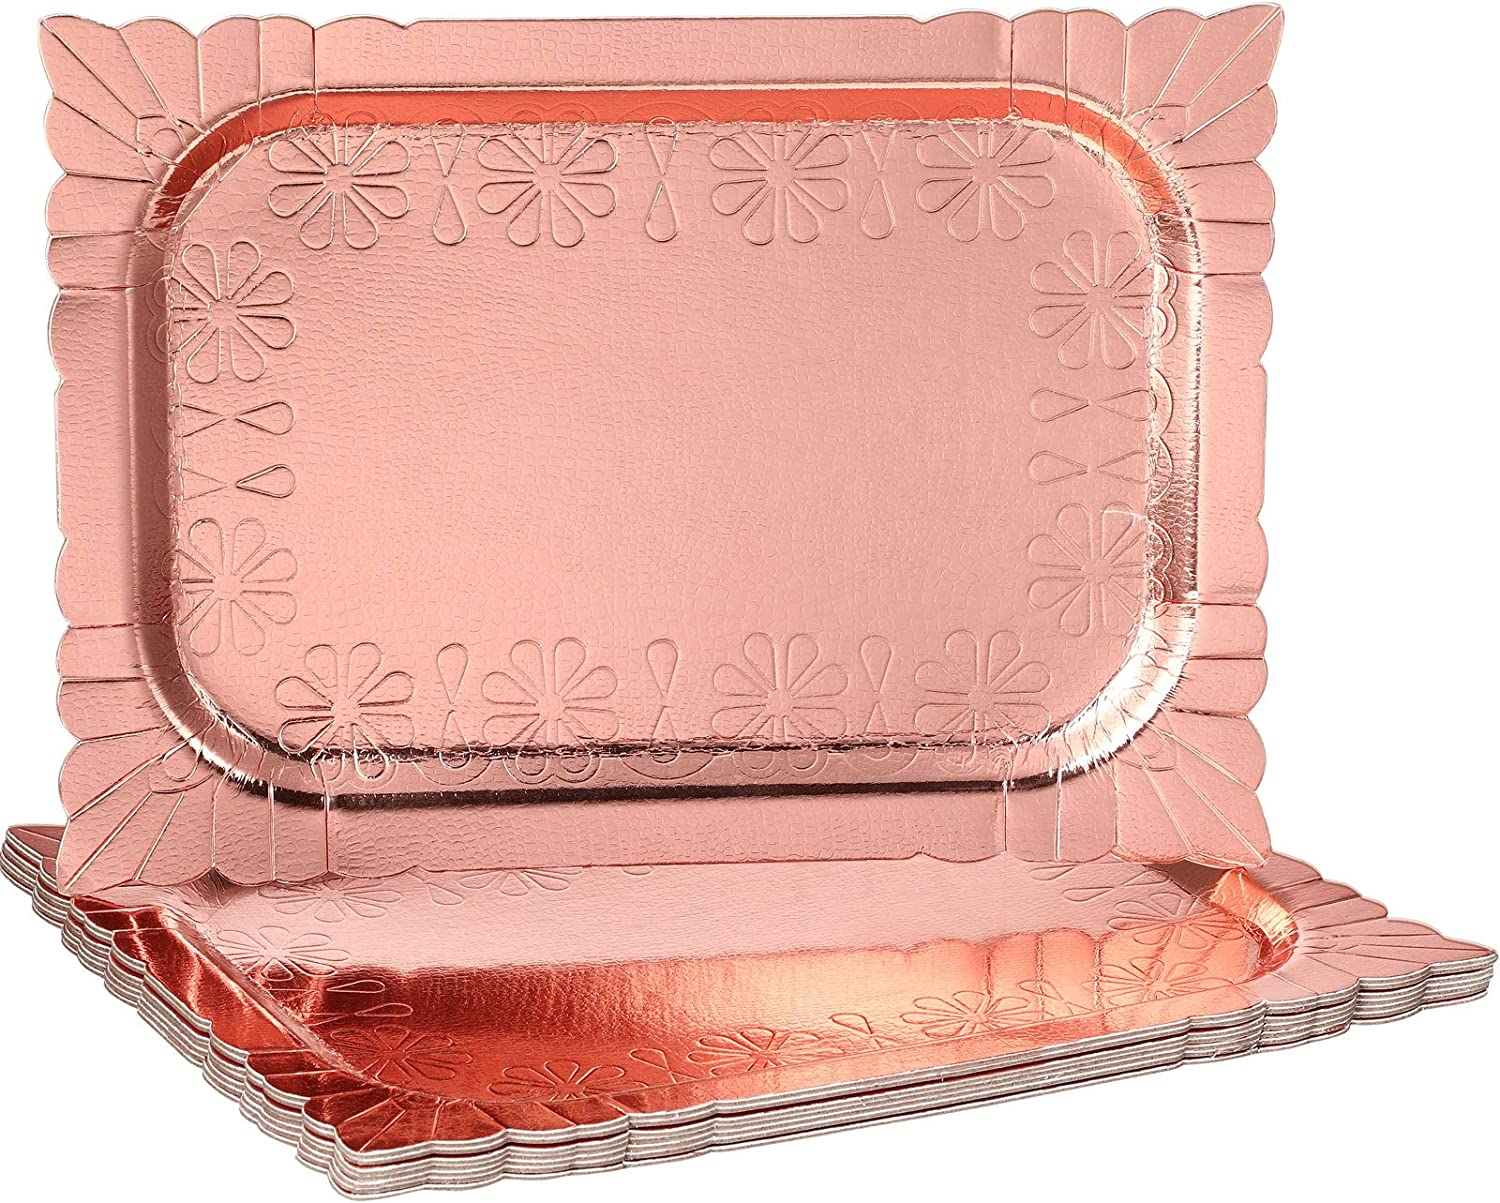 8 Pieces Rose Gold Serving Trays 9.4 x 13.4 Inch Disposable Food Safe Cardboard Serving Platters for Platters, Cupcake, Birthday Parties, Dessert, Weddings Food Safe